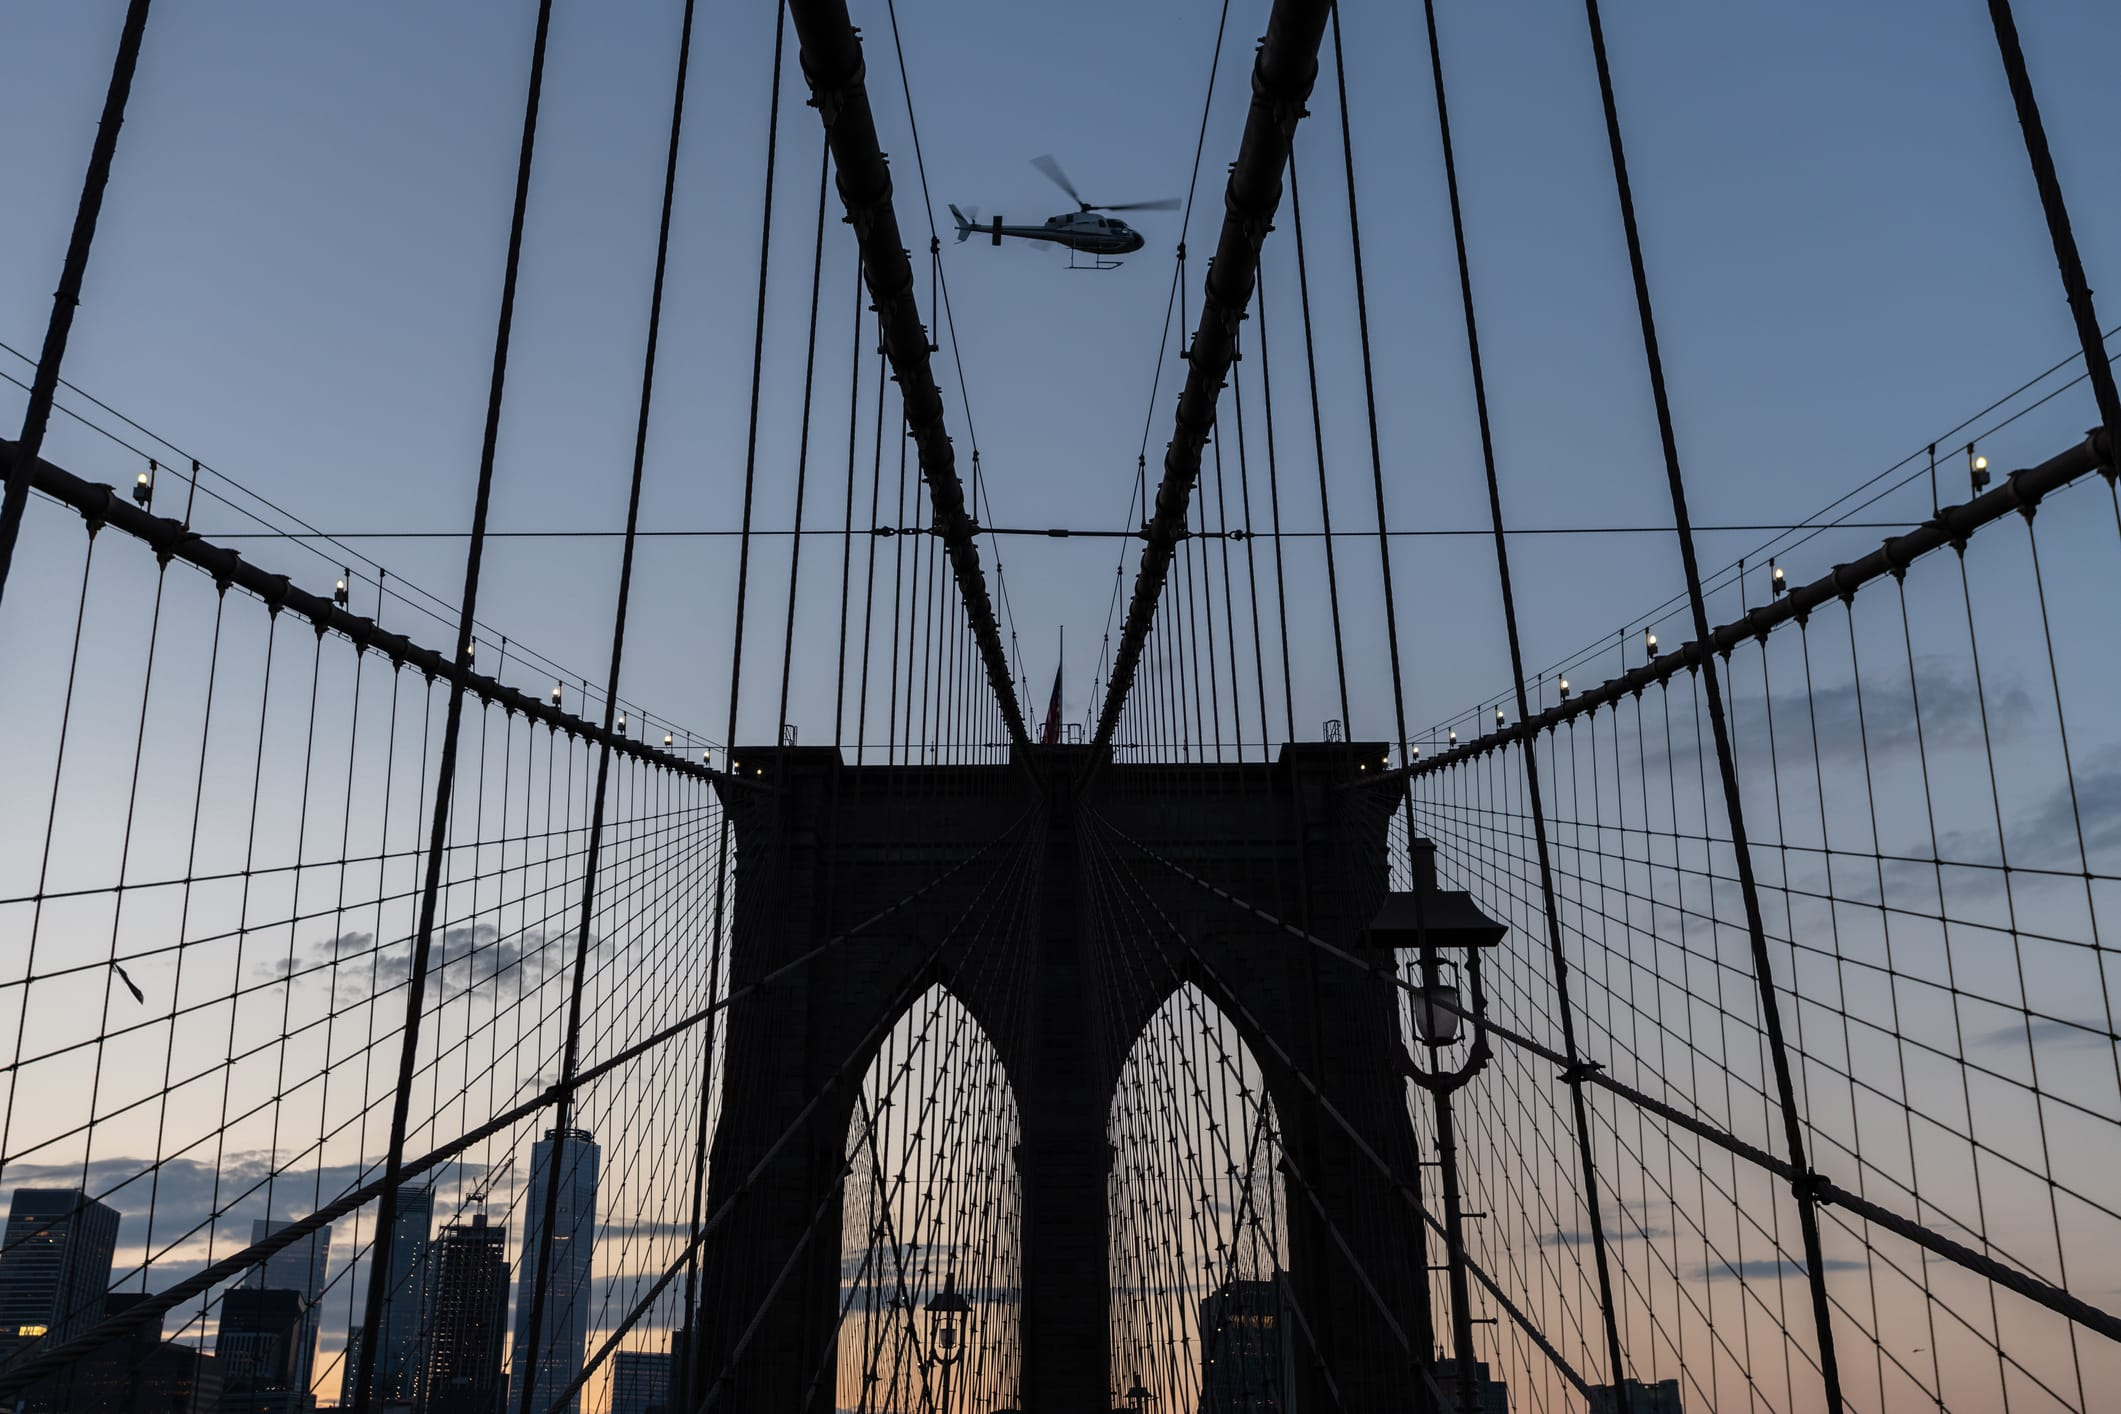 Uber's $200 helicopter taxi: Manhattan to JFK airport in 8 minutes flat